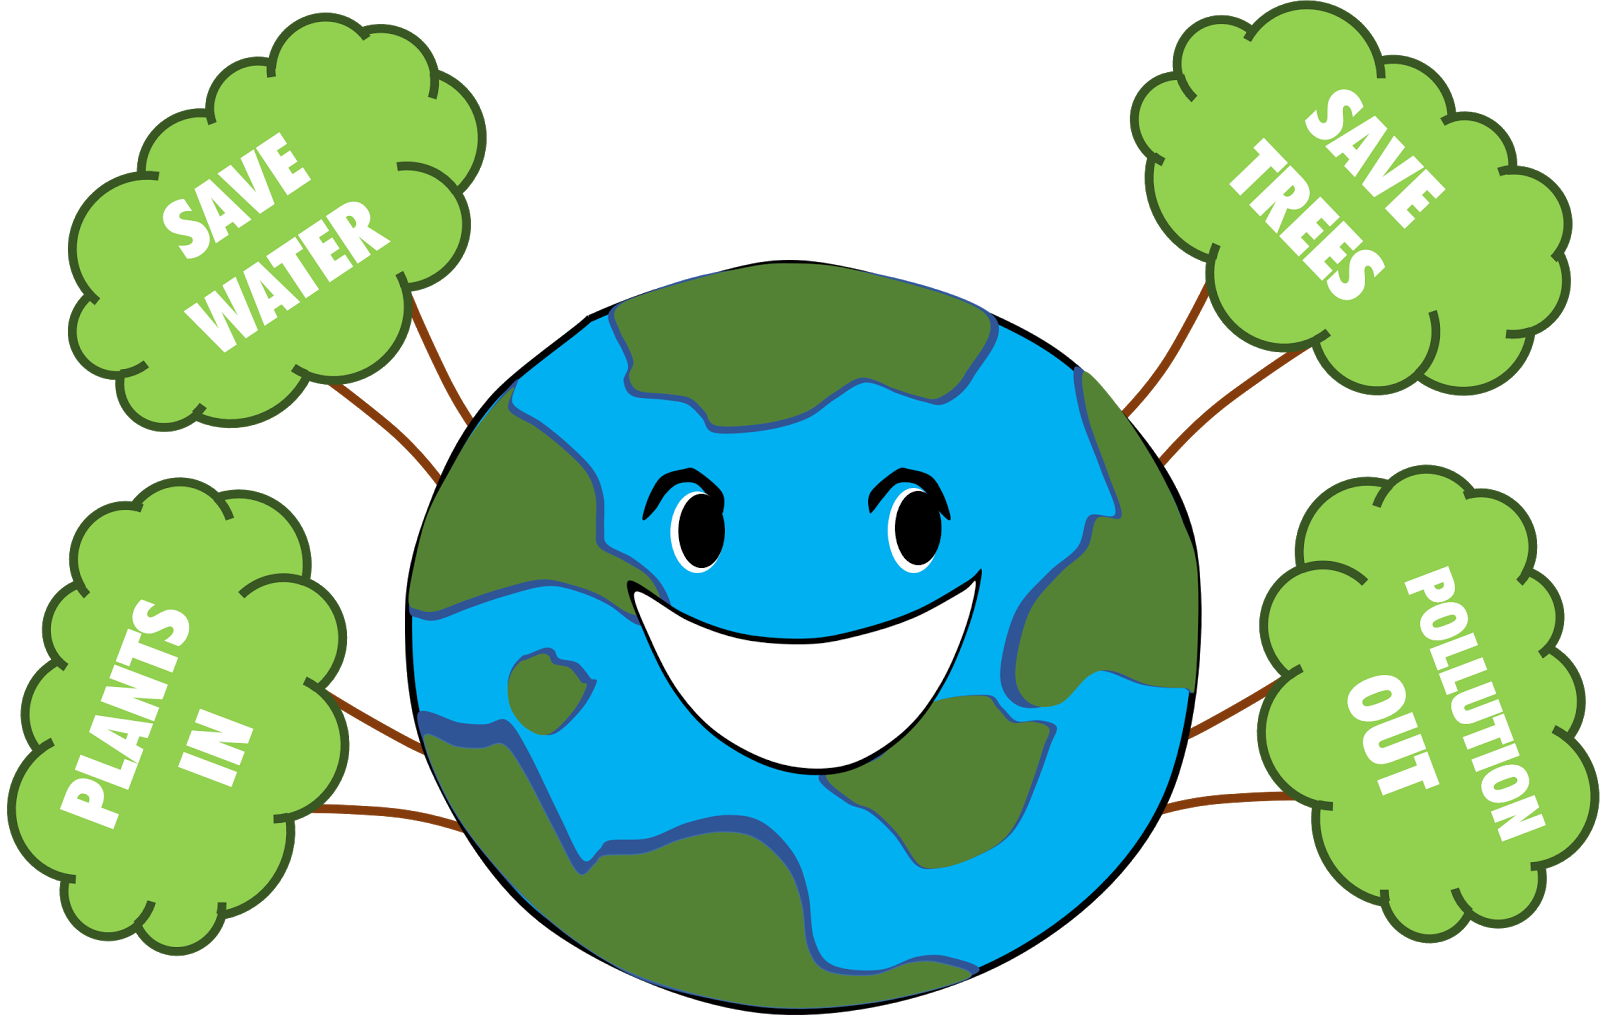 Poster for Clean and Green Earth - Clipart Creationz